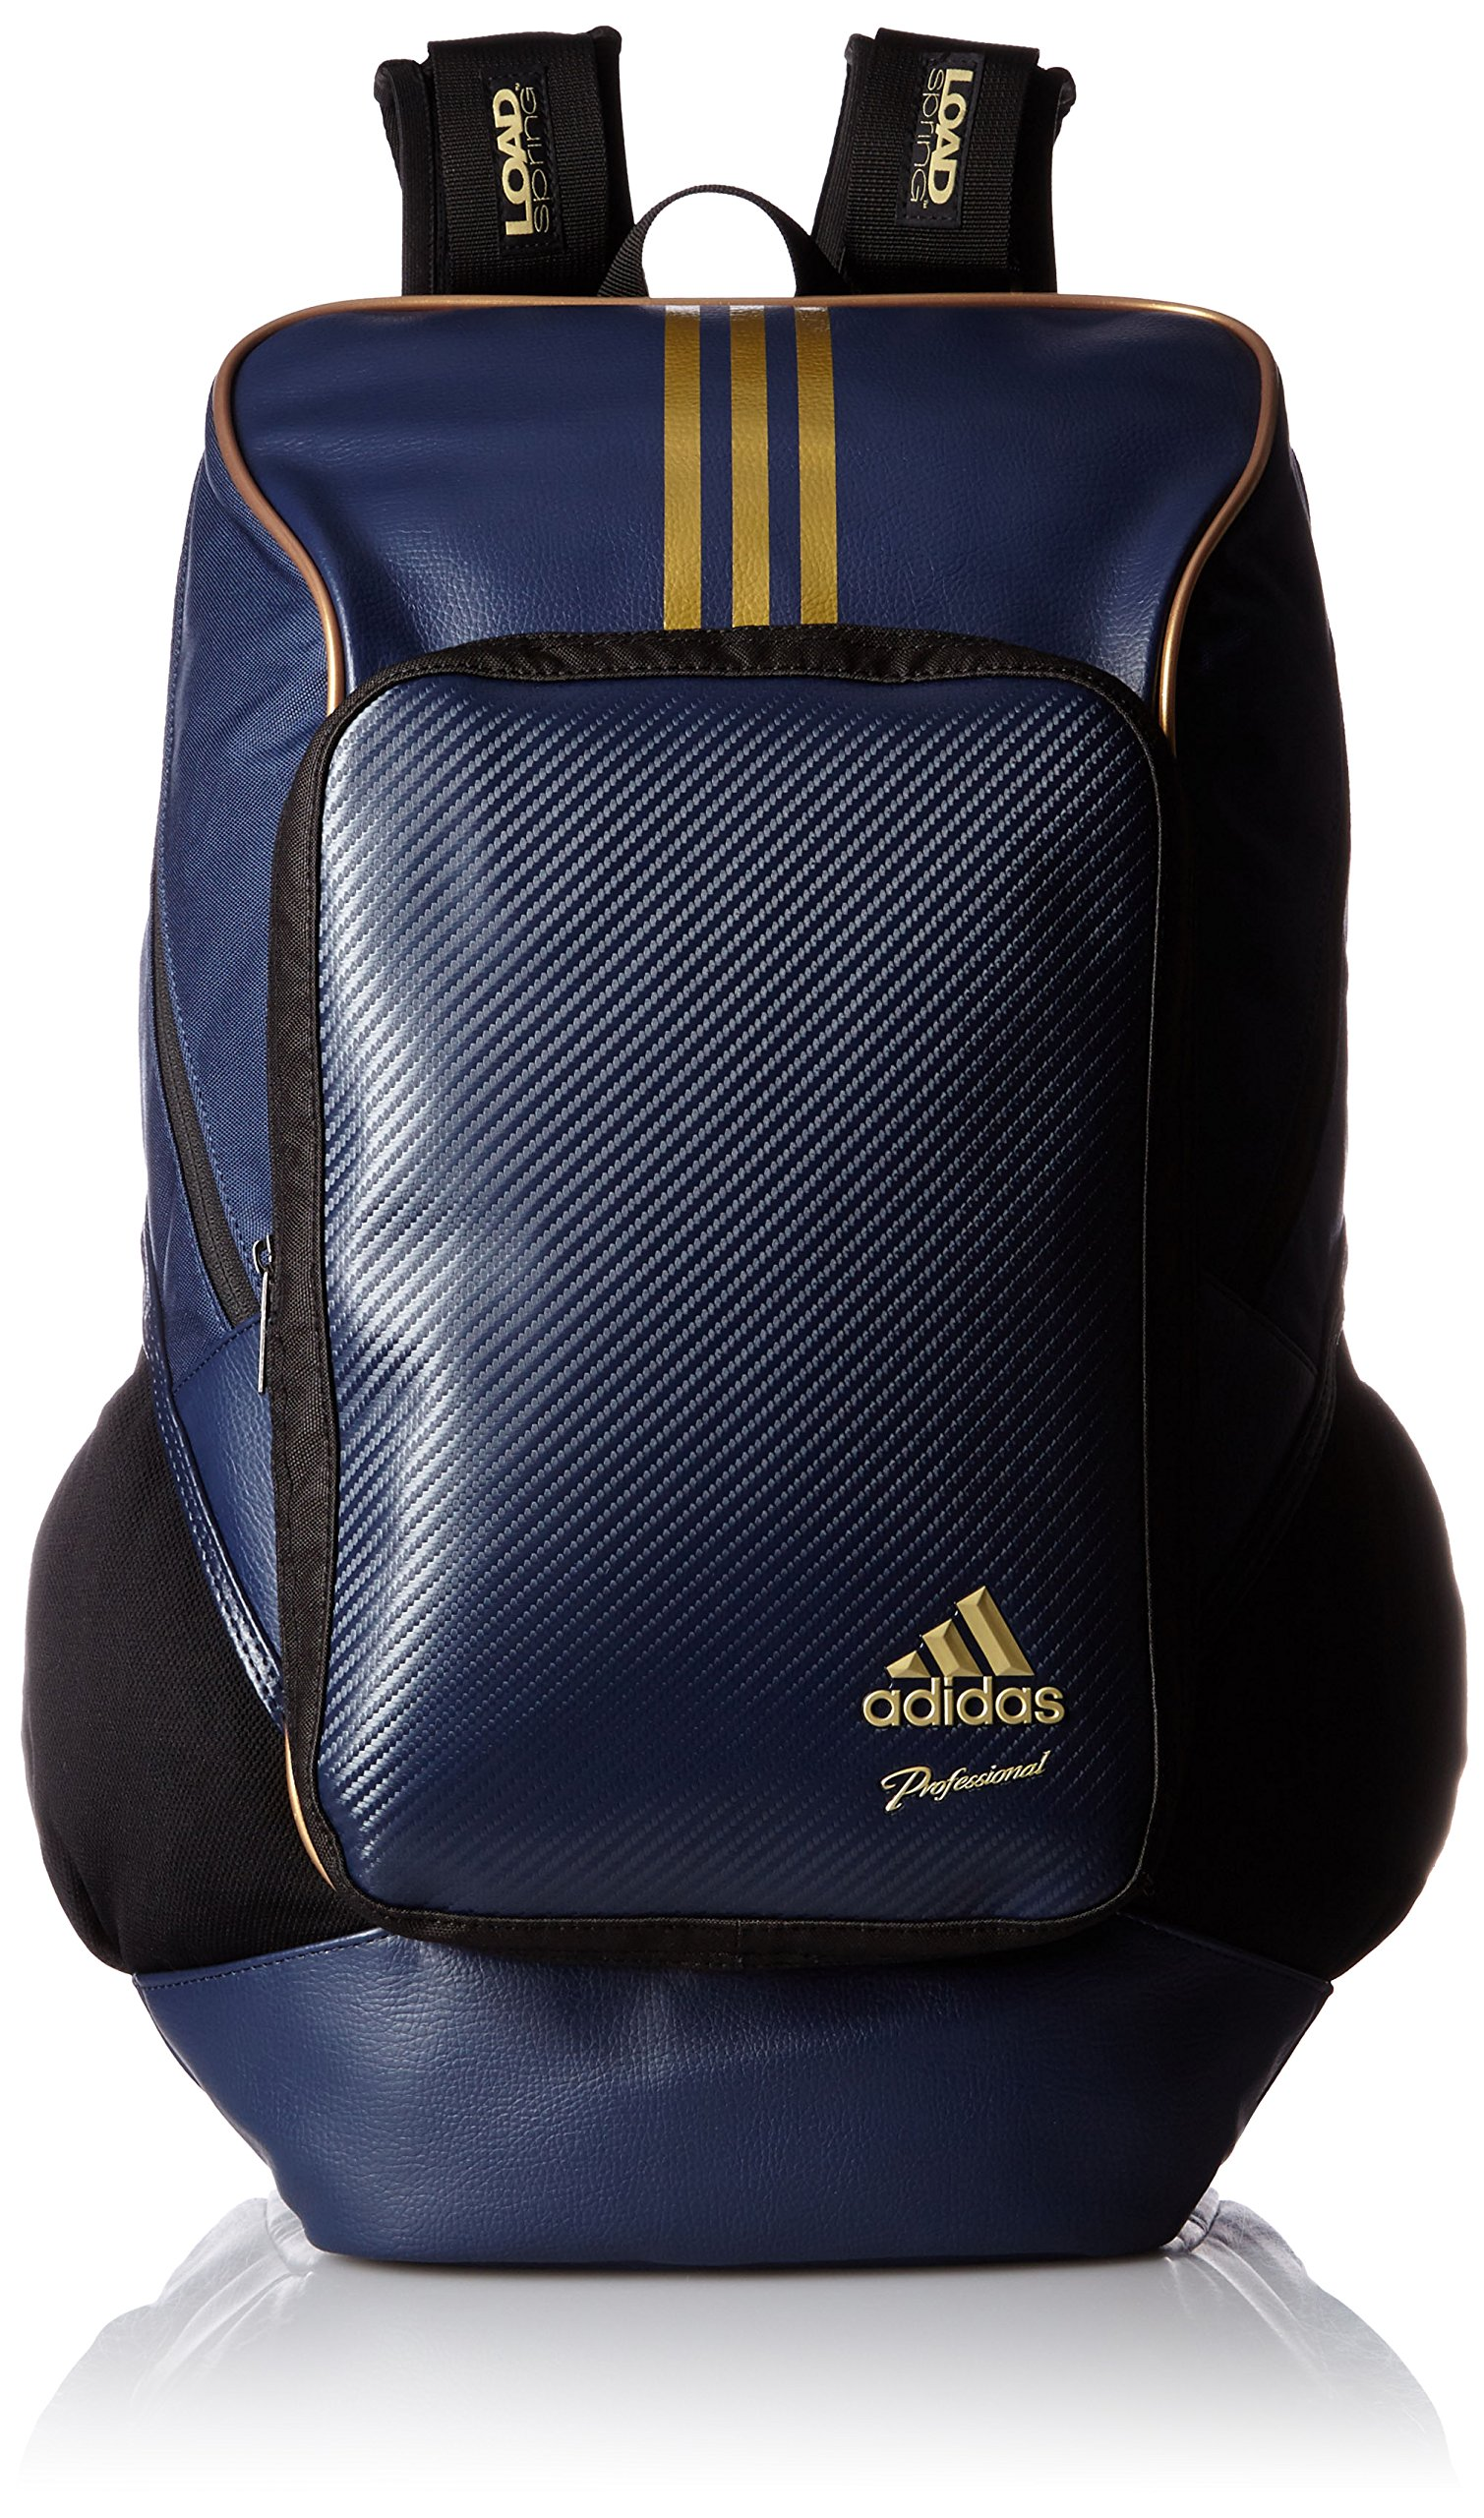 adidas Professional backpack BIN37 AP2768 (College Navy / Gold Met) by adidas (Image #1)